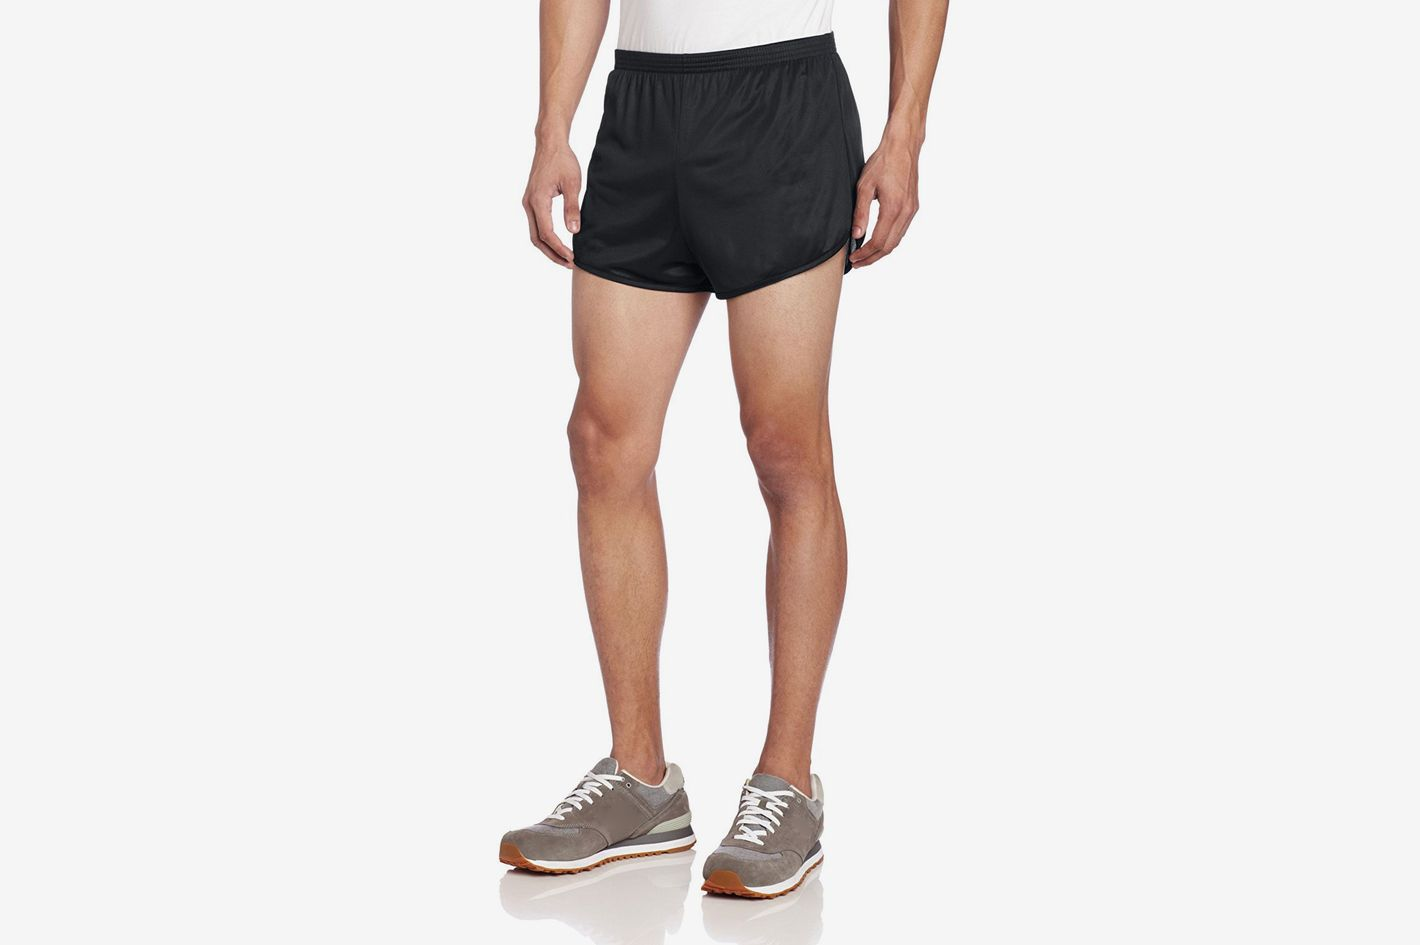 e0b24db30a 10 Best Running Shorts for Men 2018